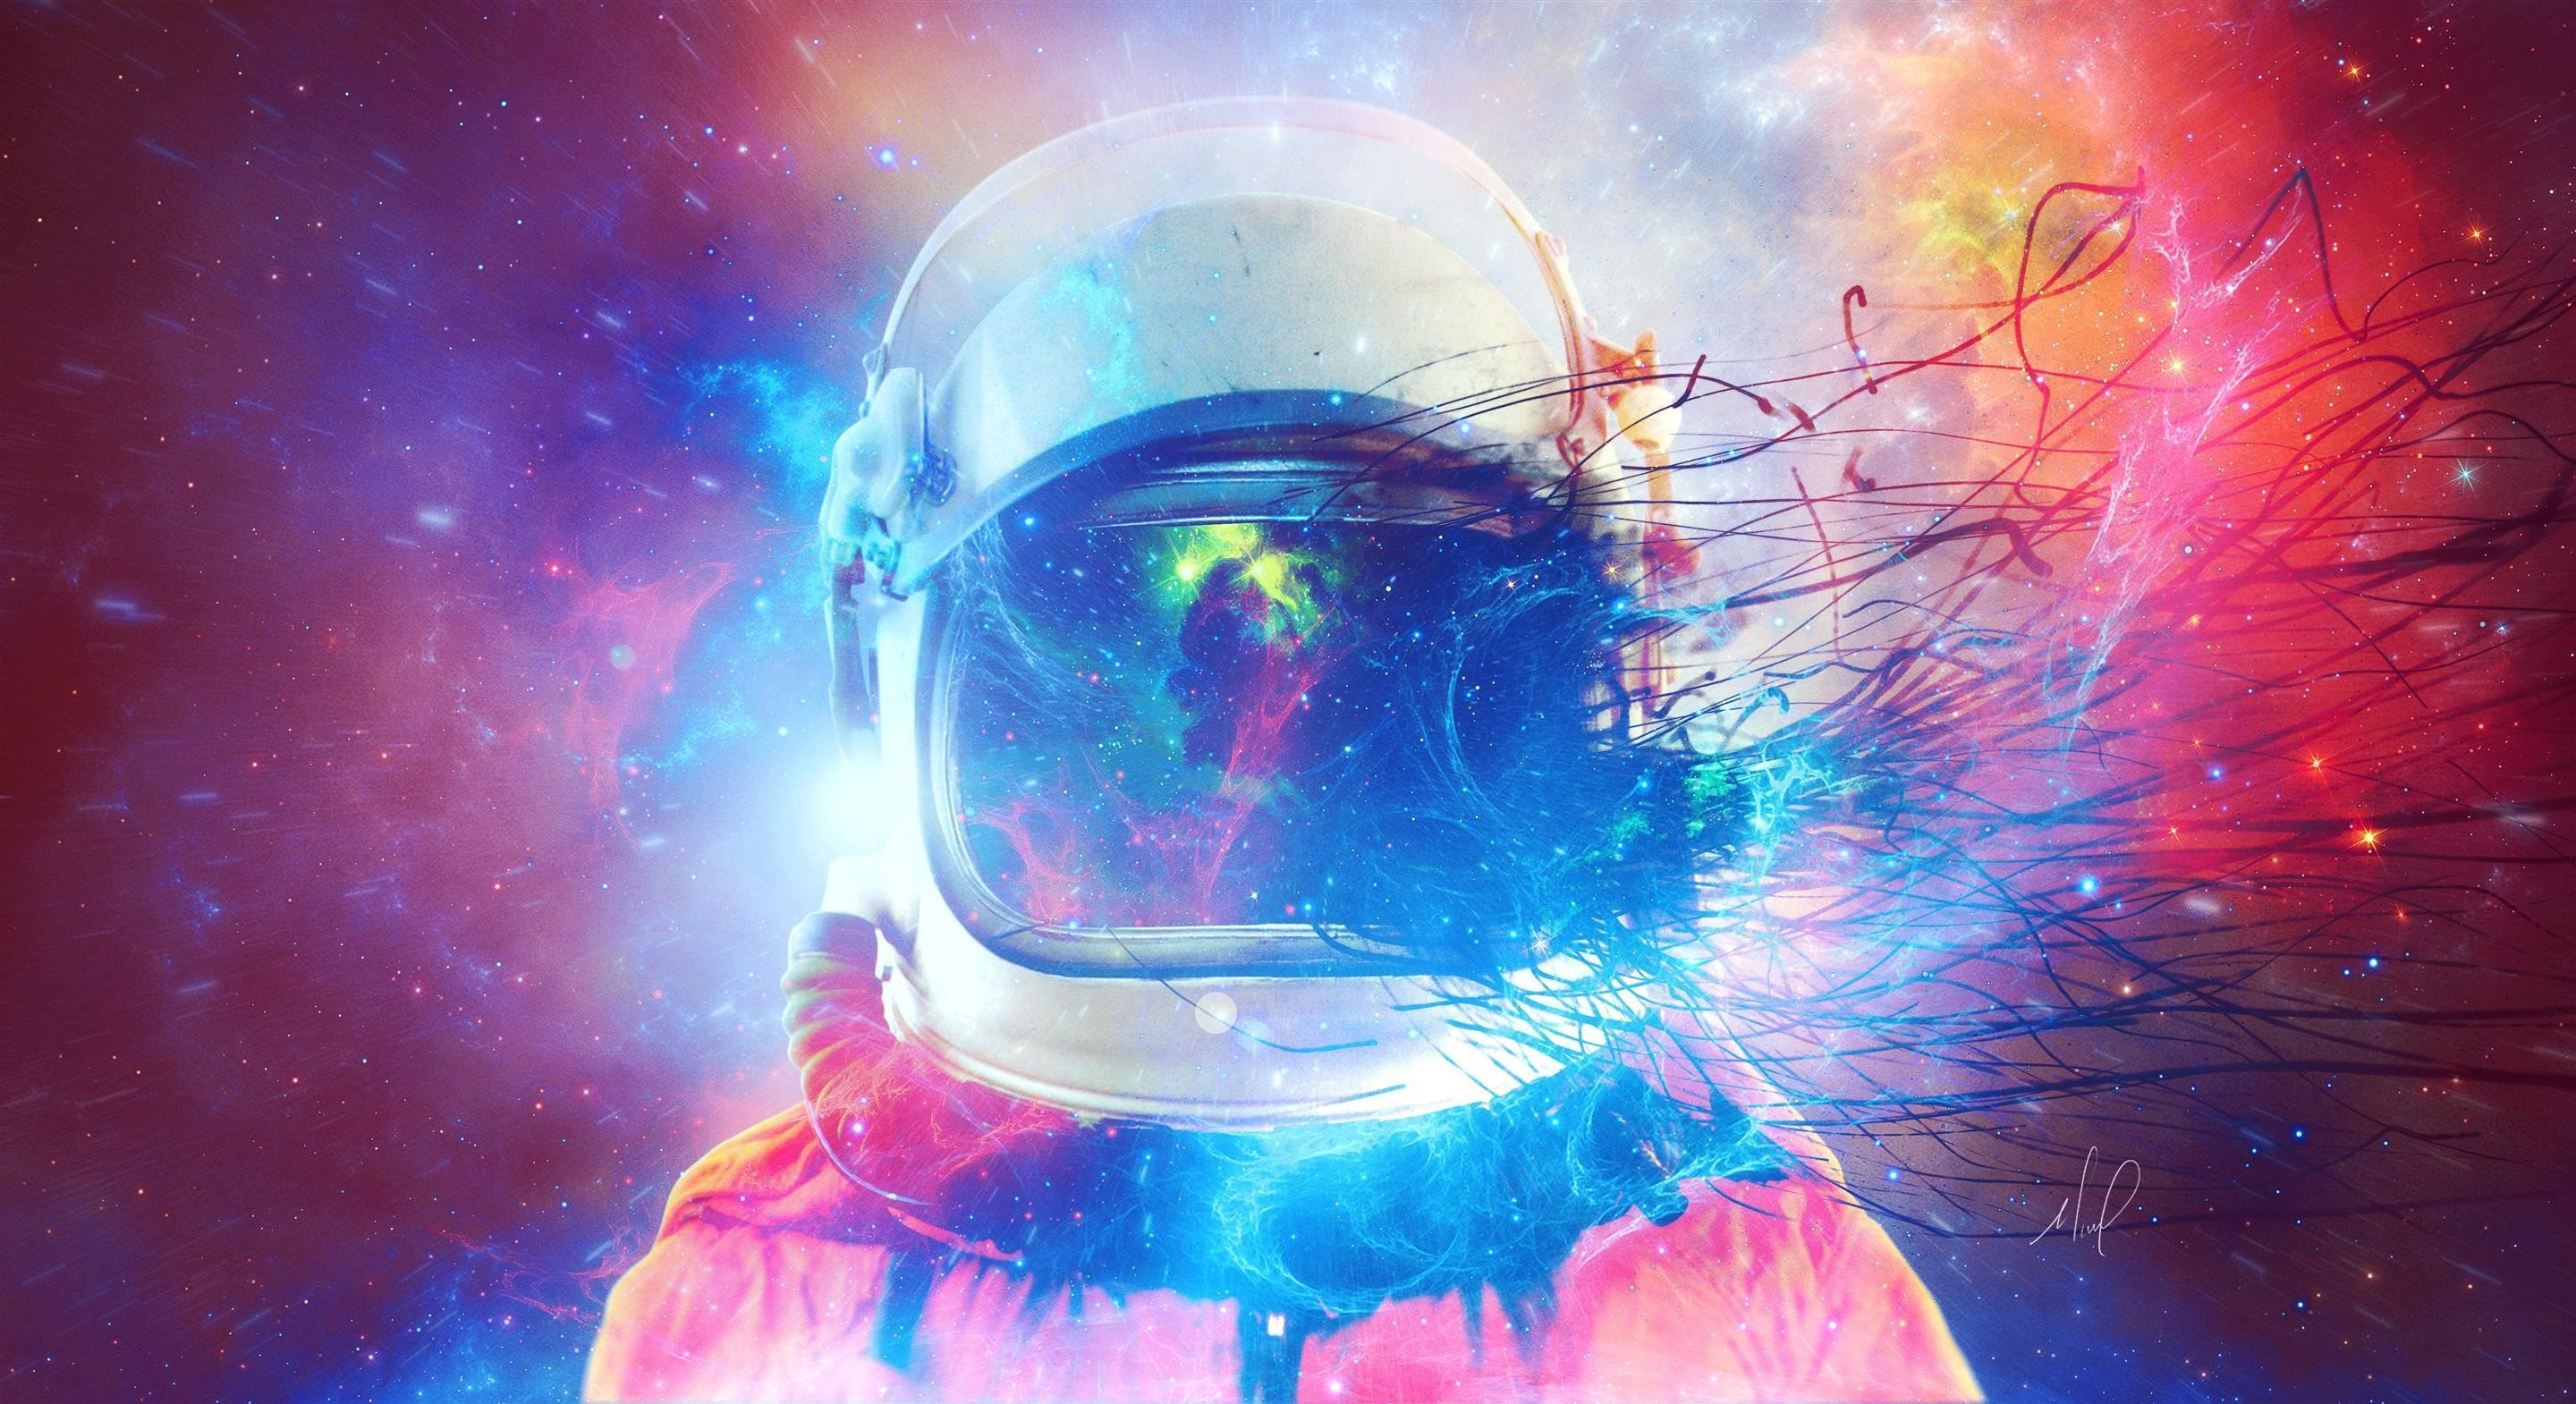 Astronaut space suit abstract space colorful helmet - Abstract space wallpaper ...